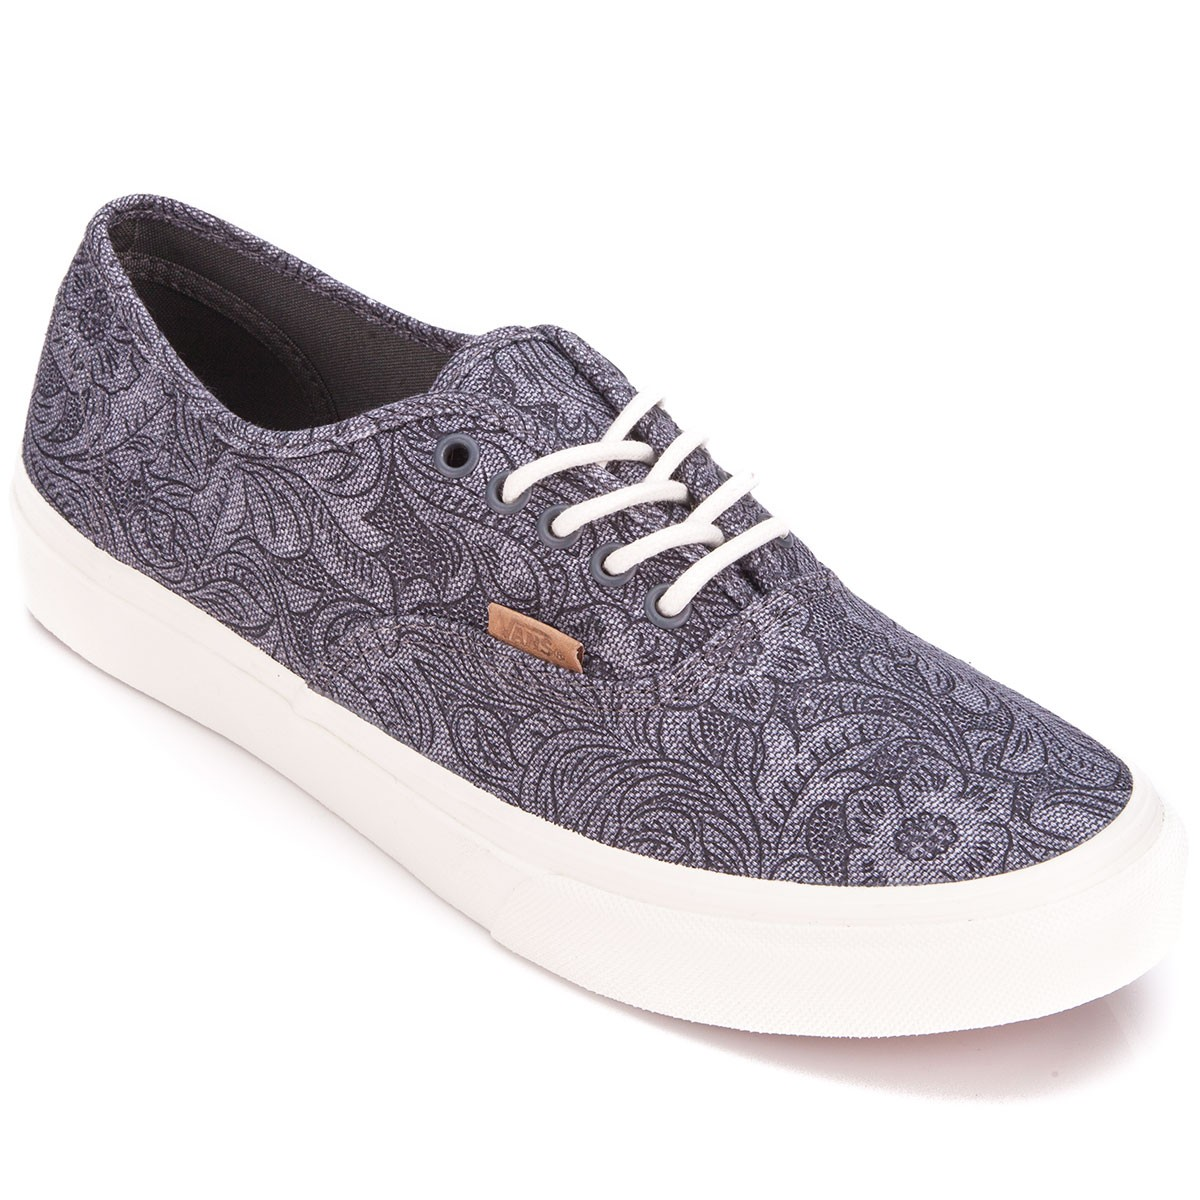 Vans Shoes: All the shoes to keep you walking in comfort and style at truexfilepv.cf Your Online Clothing & Shoes Store! Get 5% in rewards with Club O!